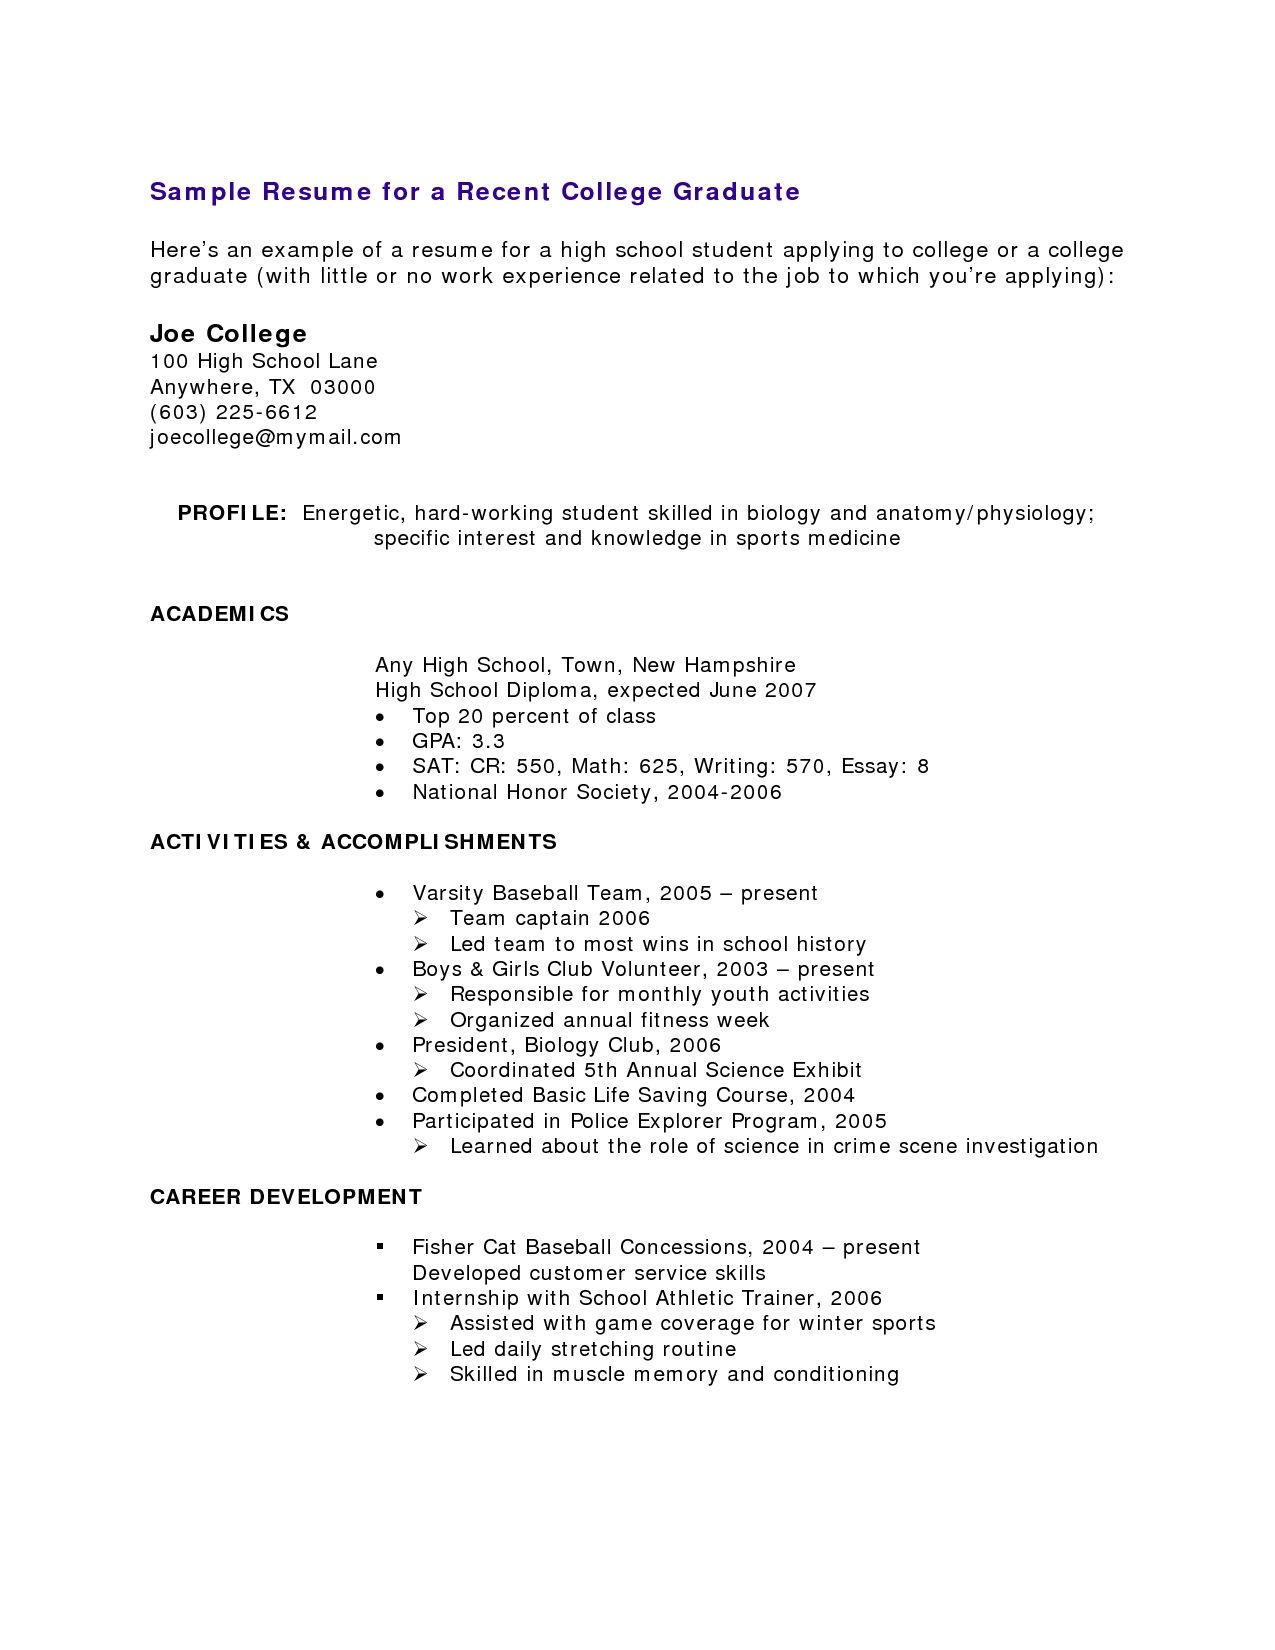 High School Student Resume With No Work Experience Examples For Students 9b0ca73c7